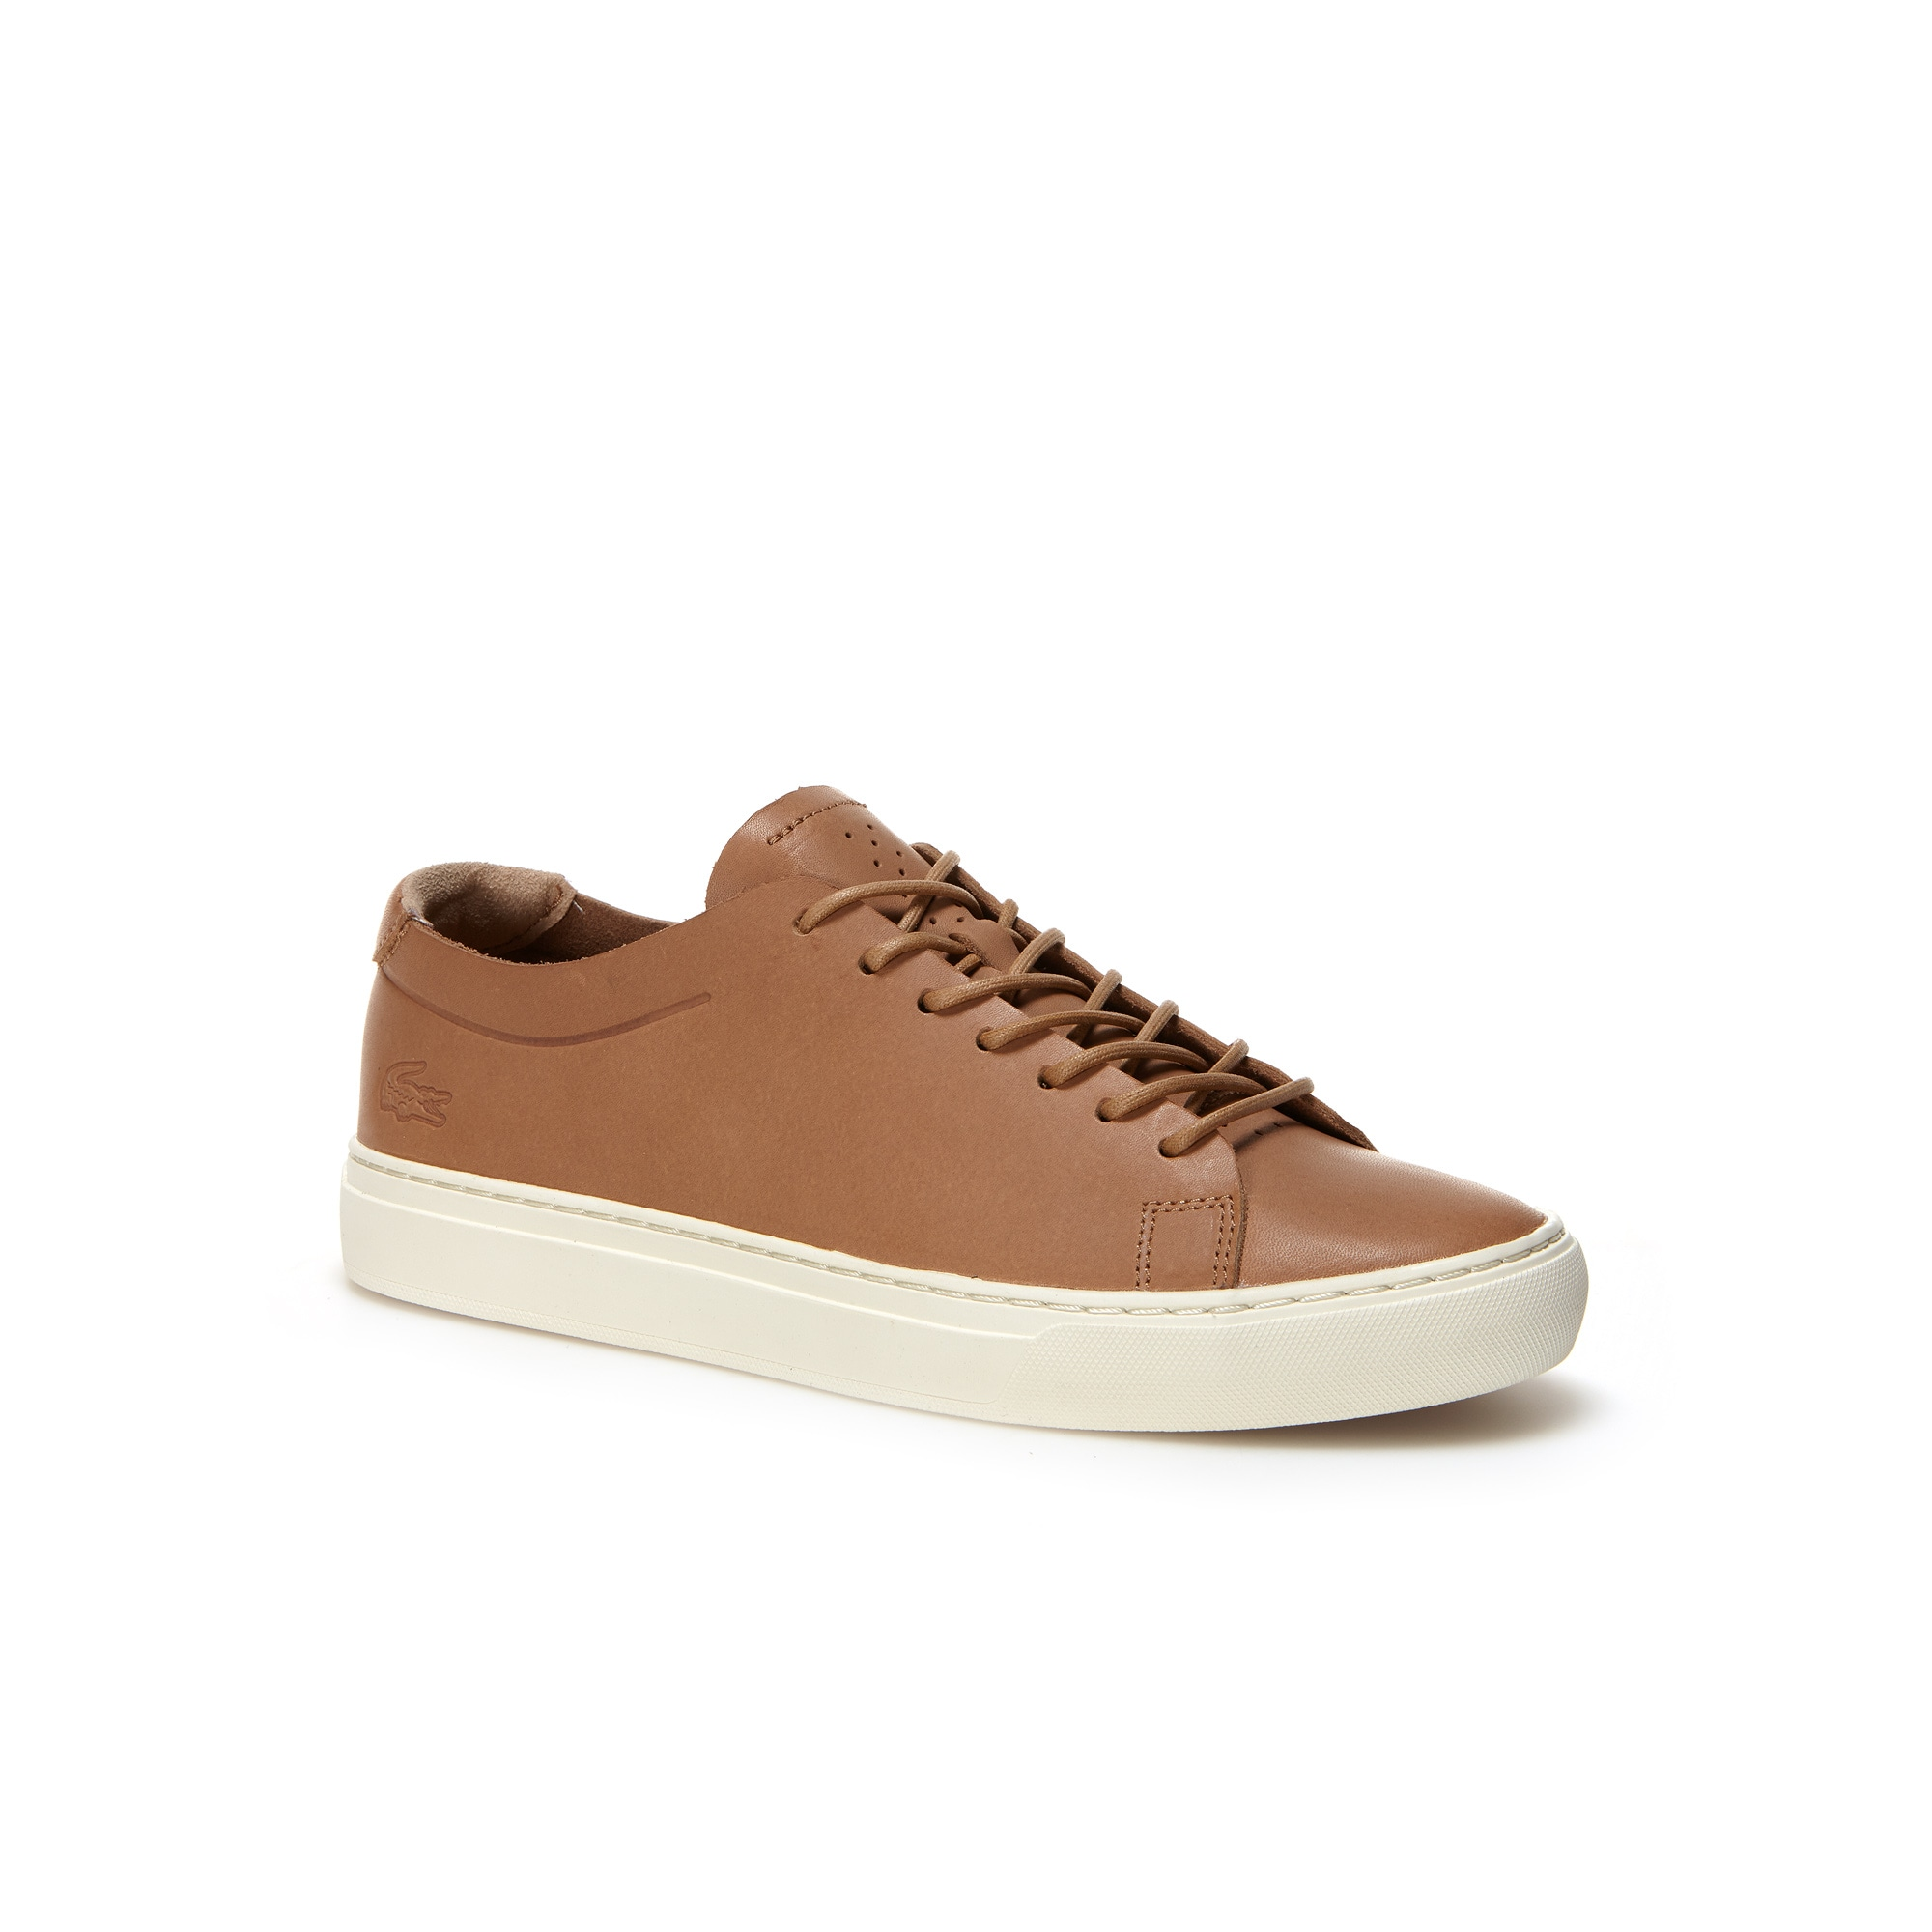 Men's L.12.12 Unlined Leather Trainers